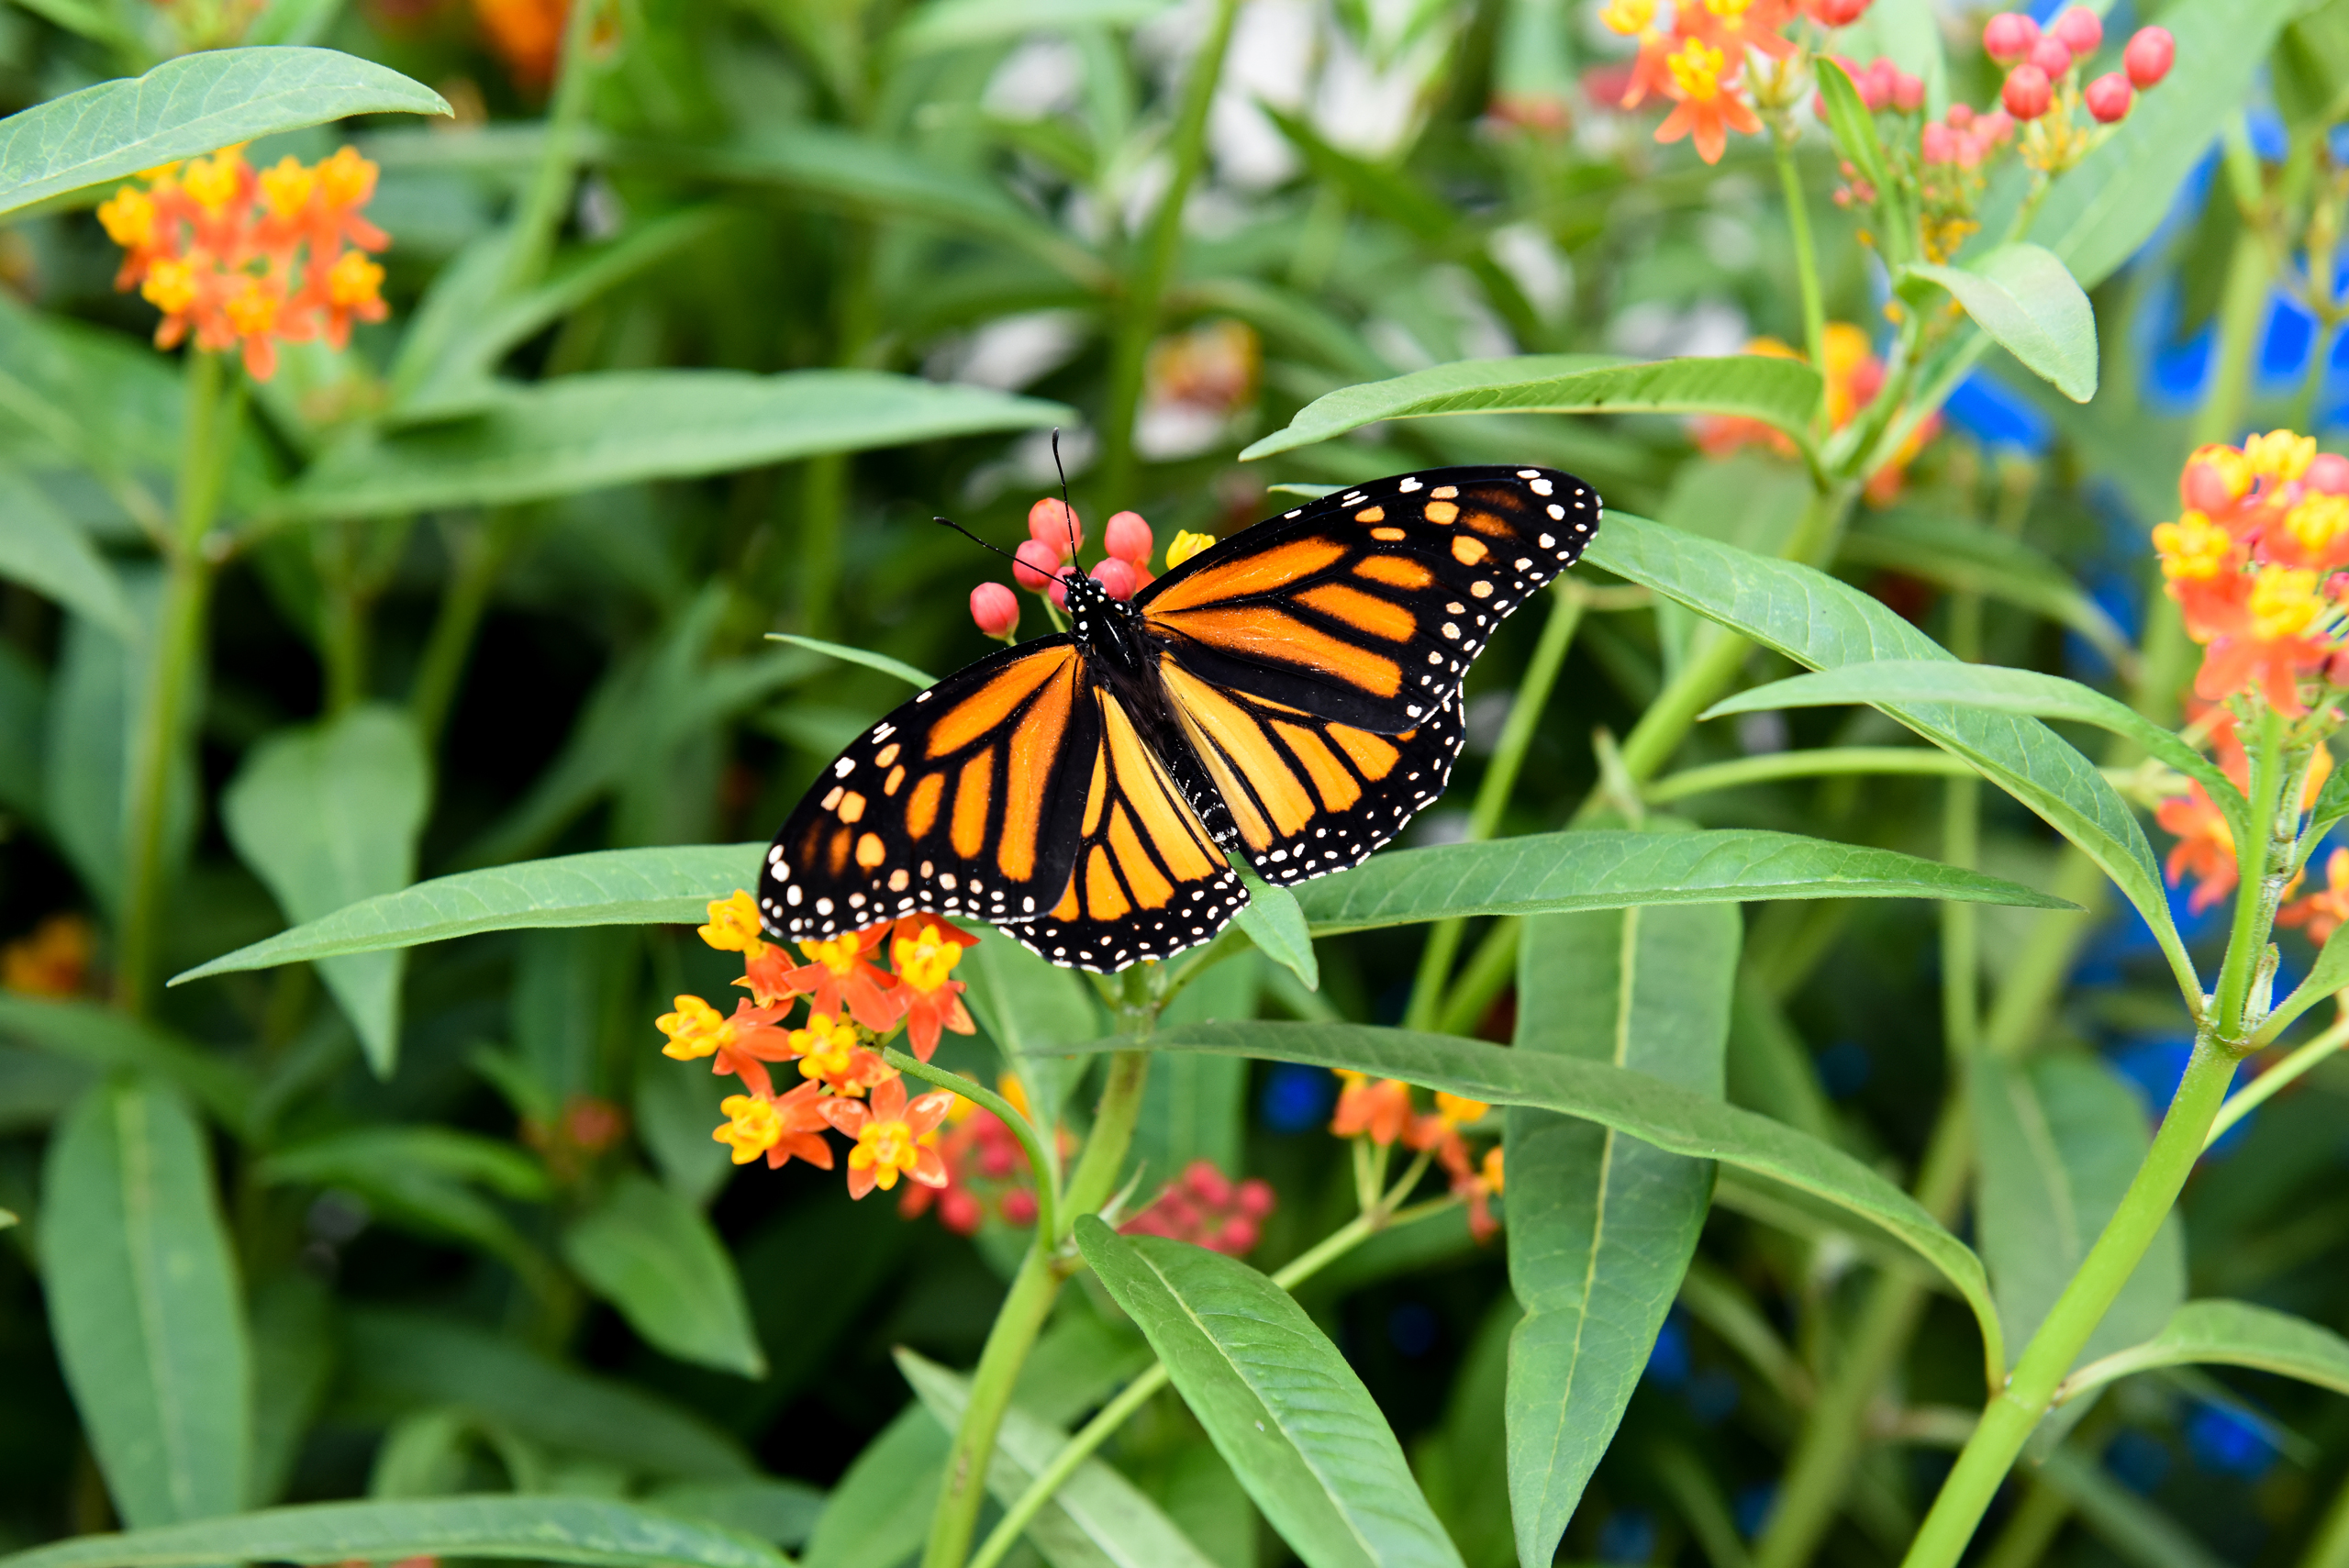 Niagara Parks to Hold Annual Monarch Release